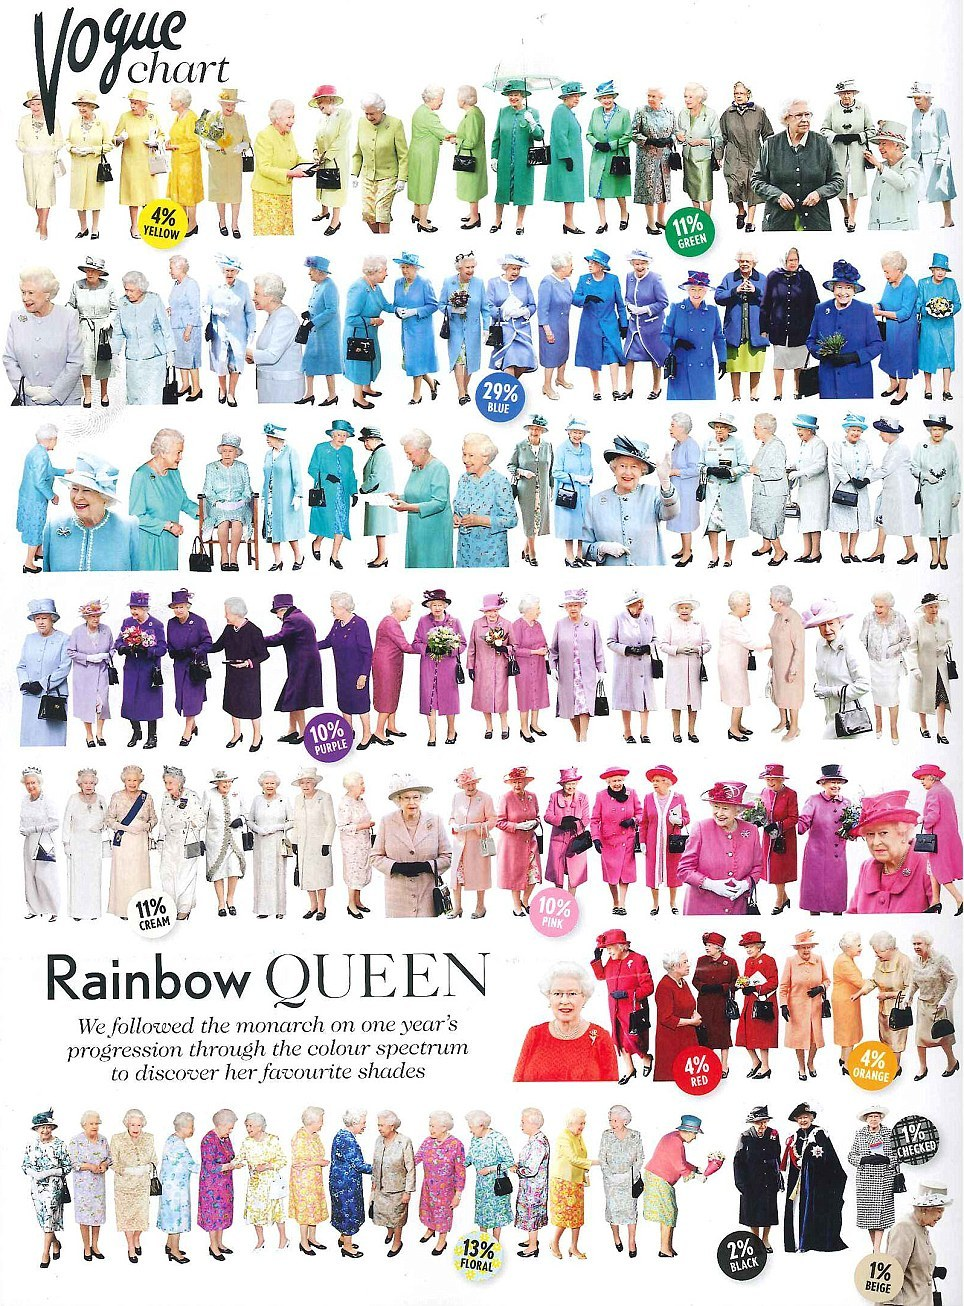 Vogue spent a year tracking the Queen's outfits in an effort to determine her favorite color, which, according to this handy color chart, would appear to be blue. Lest you believe the Queen to be fashionably boring, however, her outfit map veers suddenly into flippantly floral territories, the wild waters into which Her Majesty dips Her Royal Toes for a cumulative 13% of her year. The more you know! - Maggie